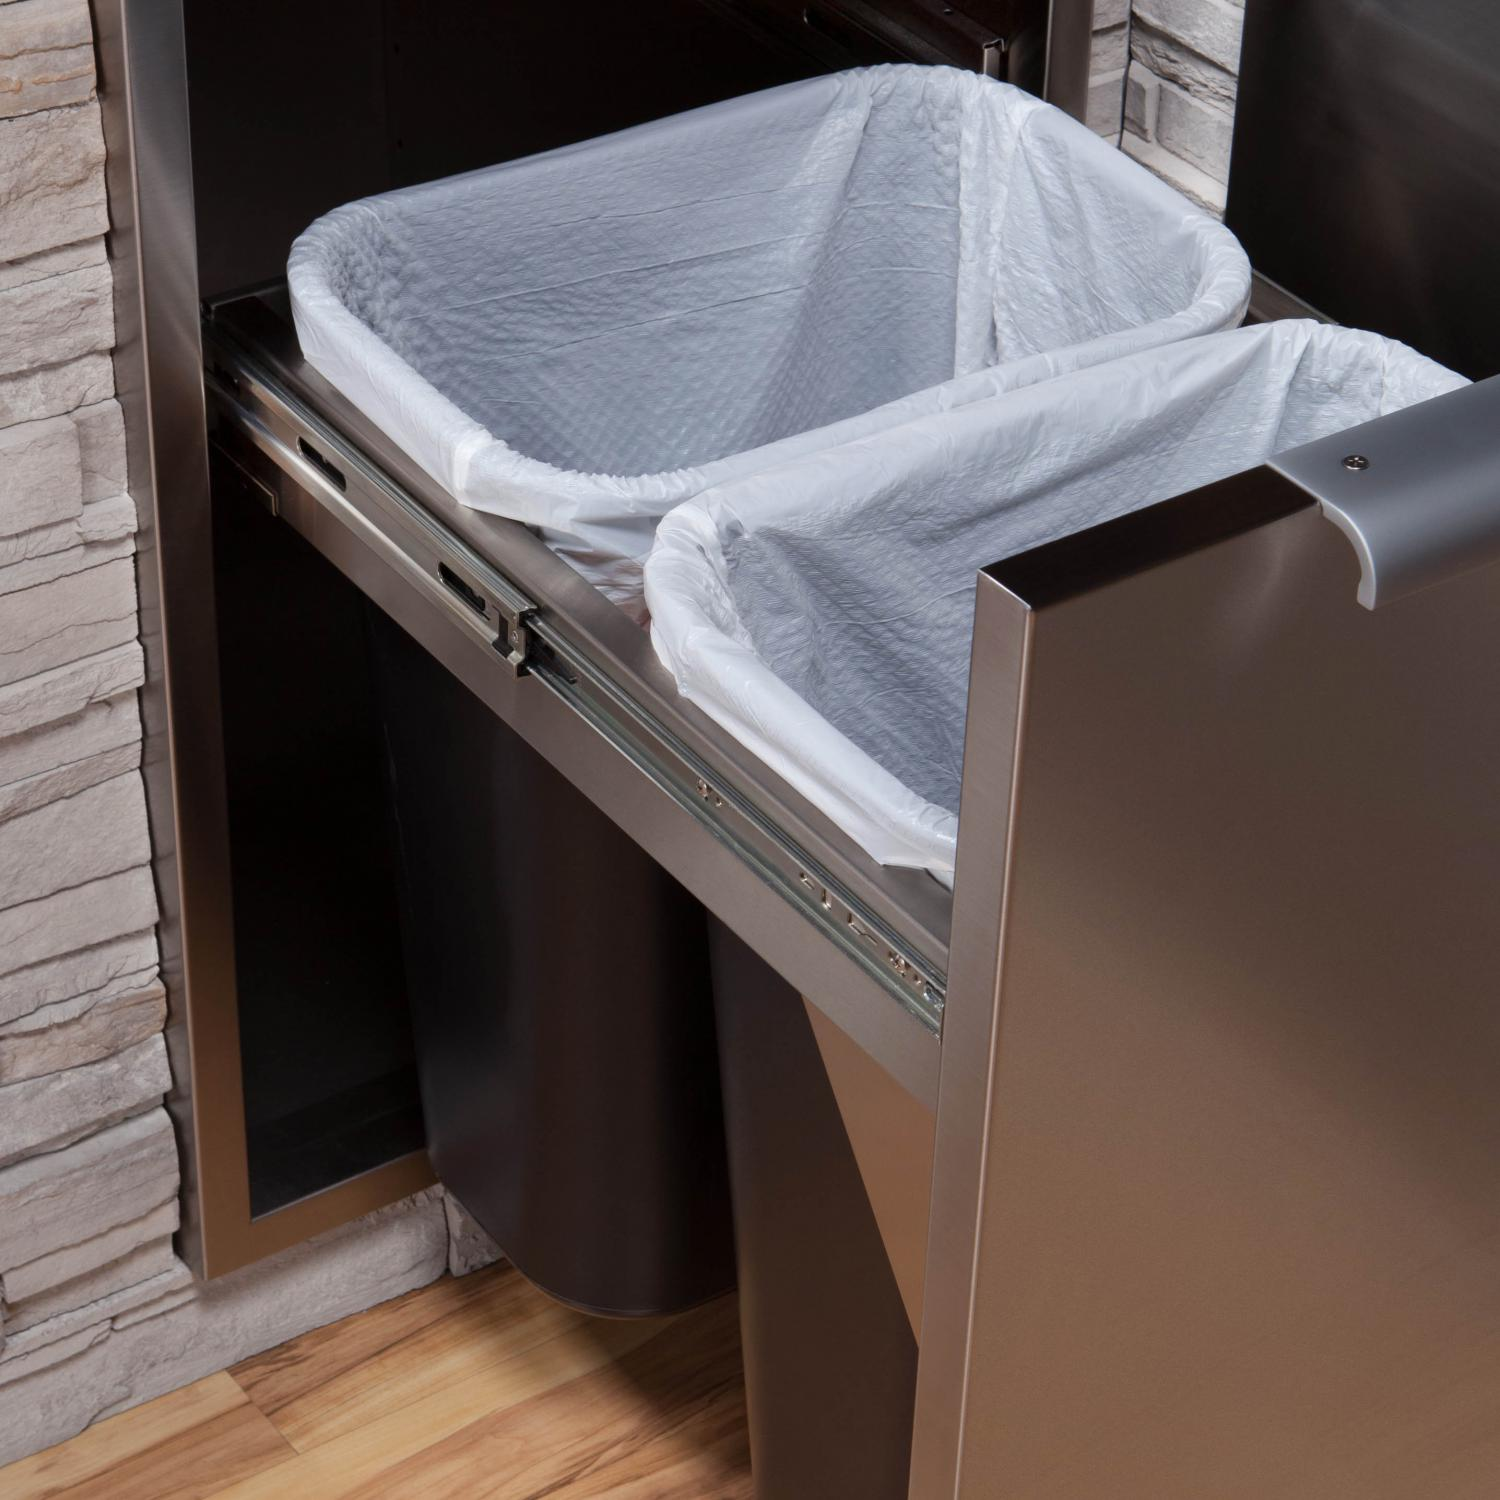 DCS 20Inch RollOut Trash  Recycle Bin With Soft Close